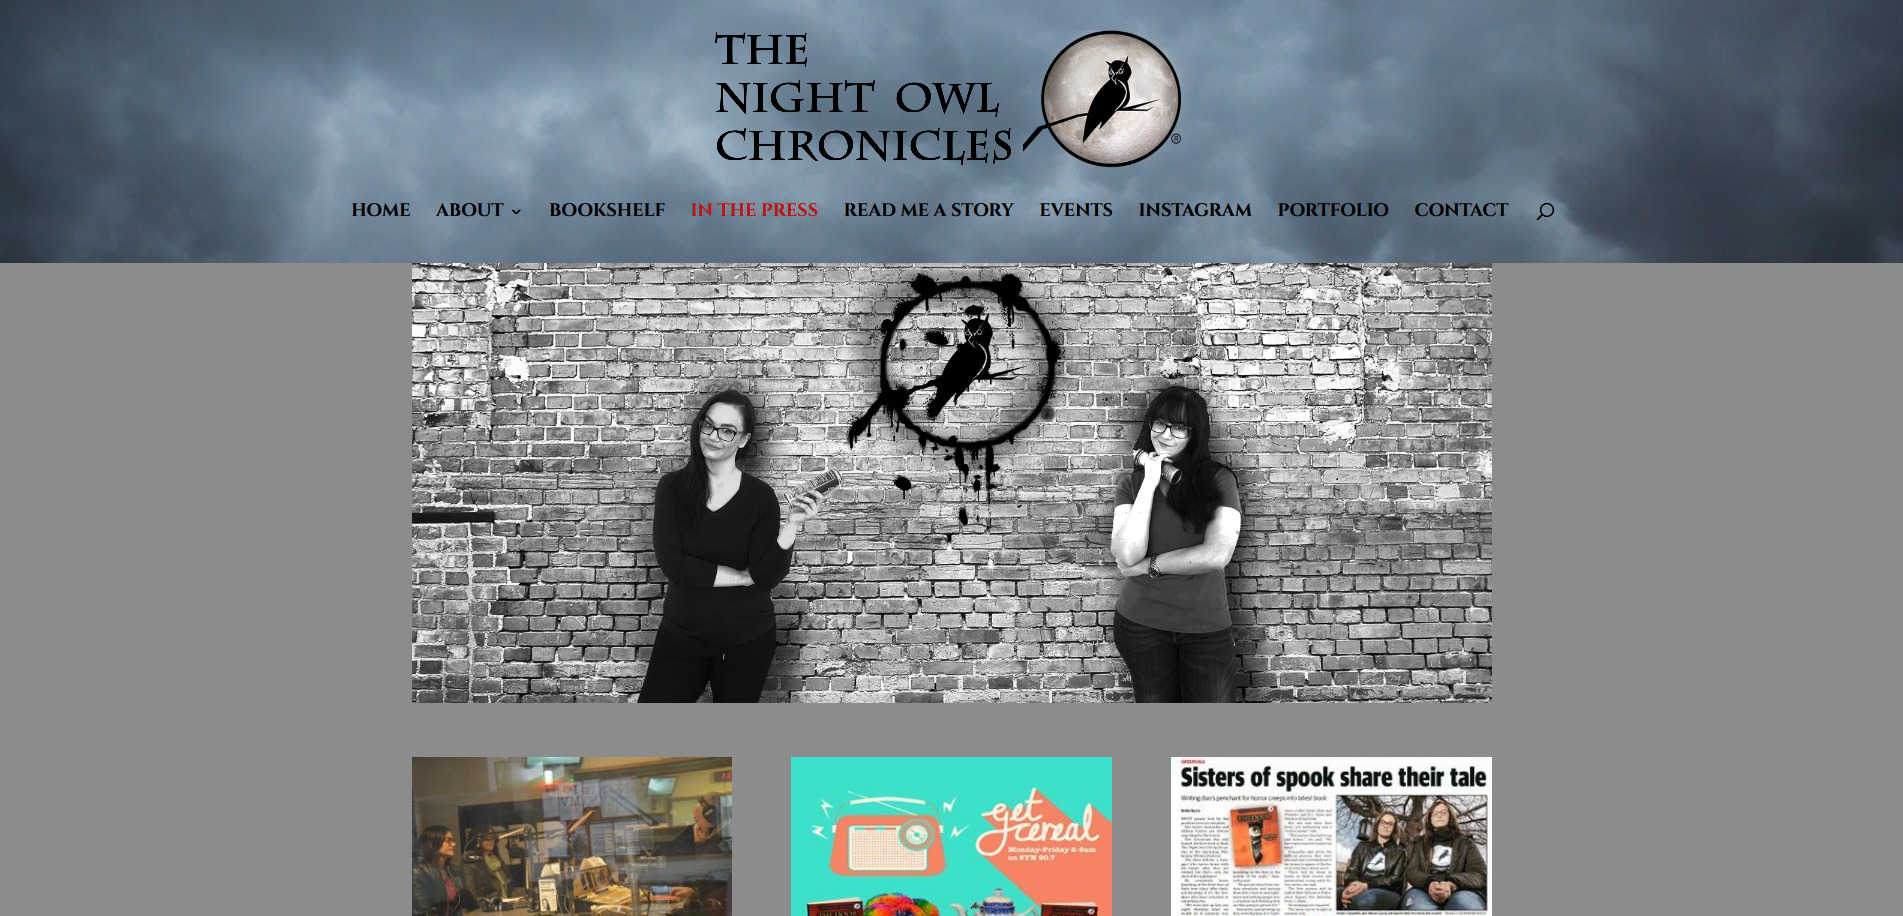 The Night Owl Chronicles